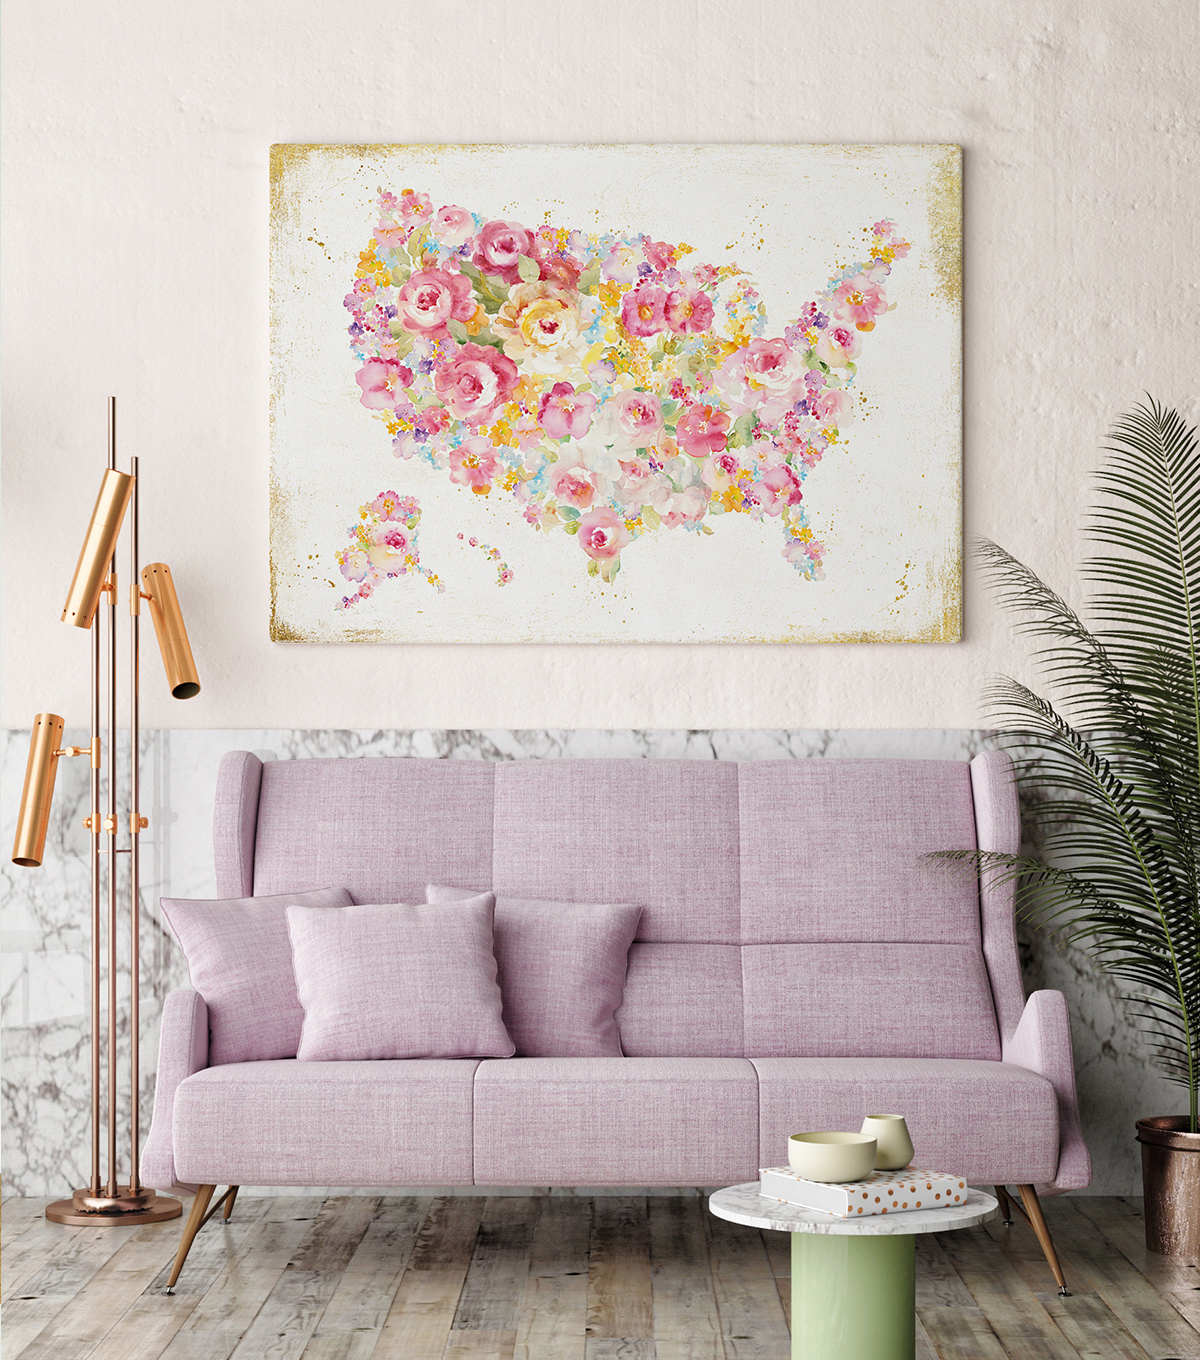 Millennial pink couch with a pink abstract painting of the US behind it.